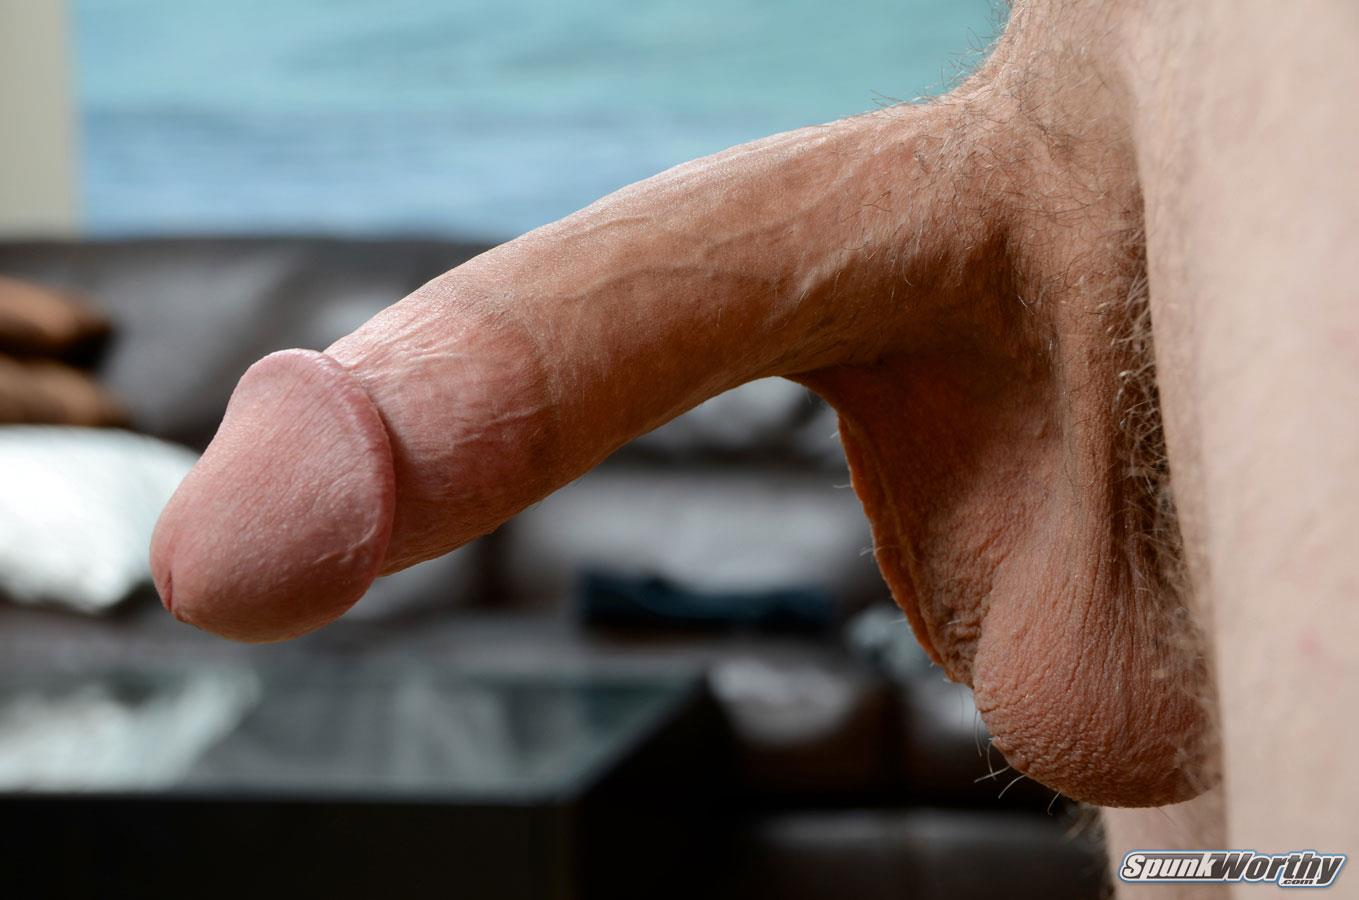 Have found big cock masturbation clips help